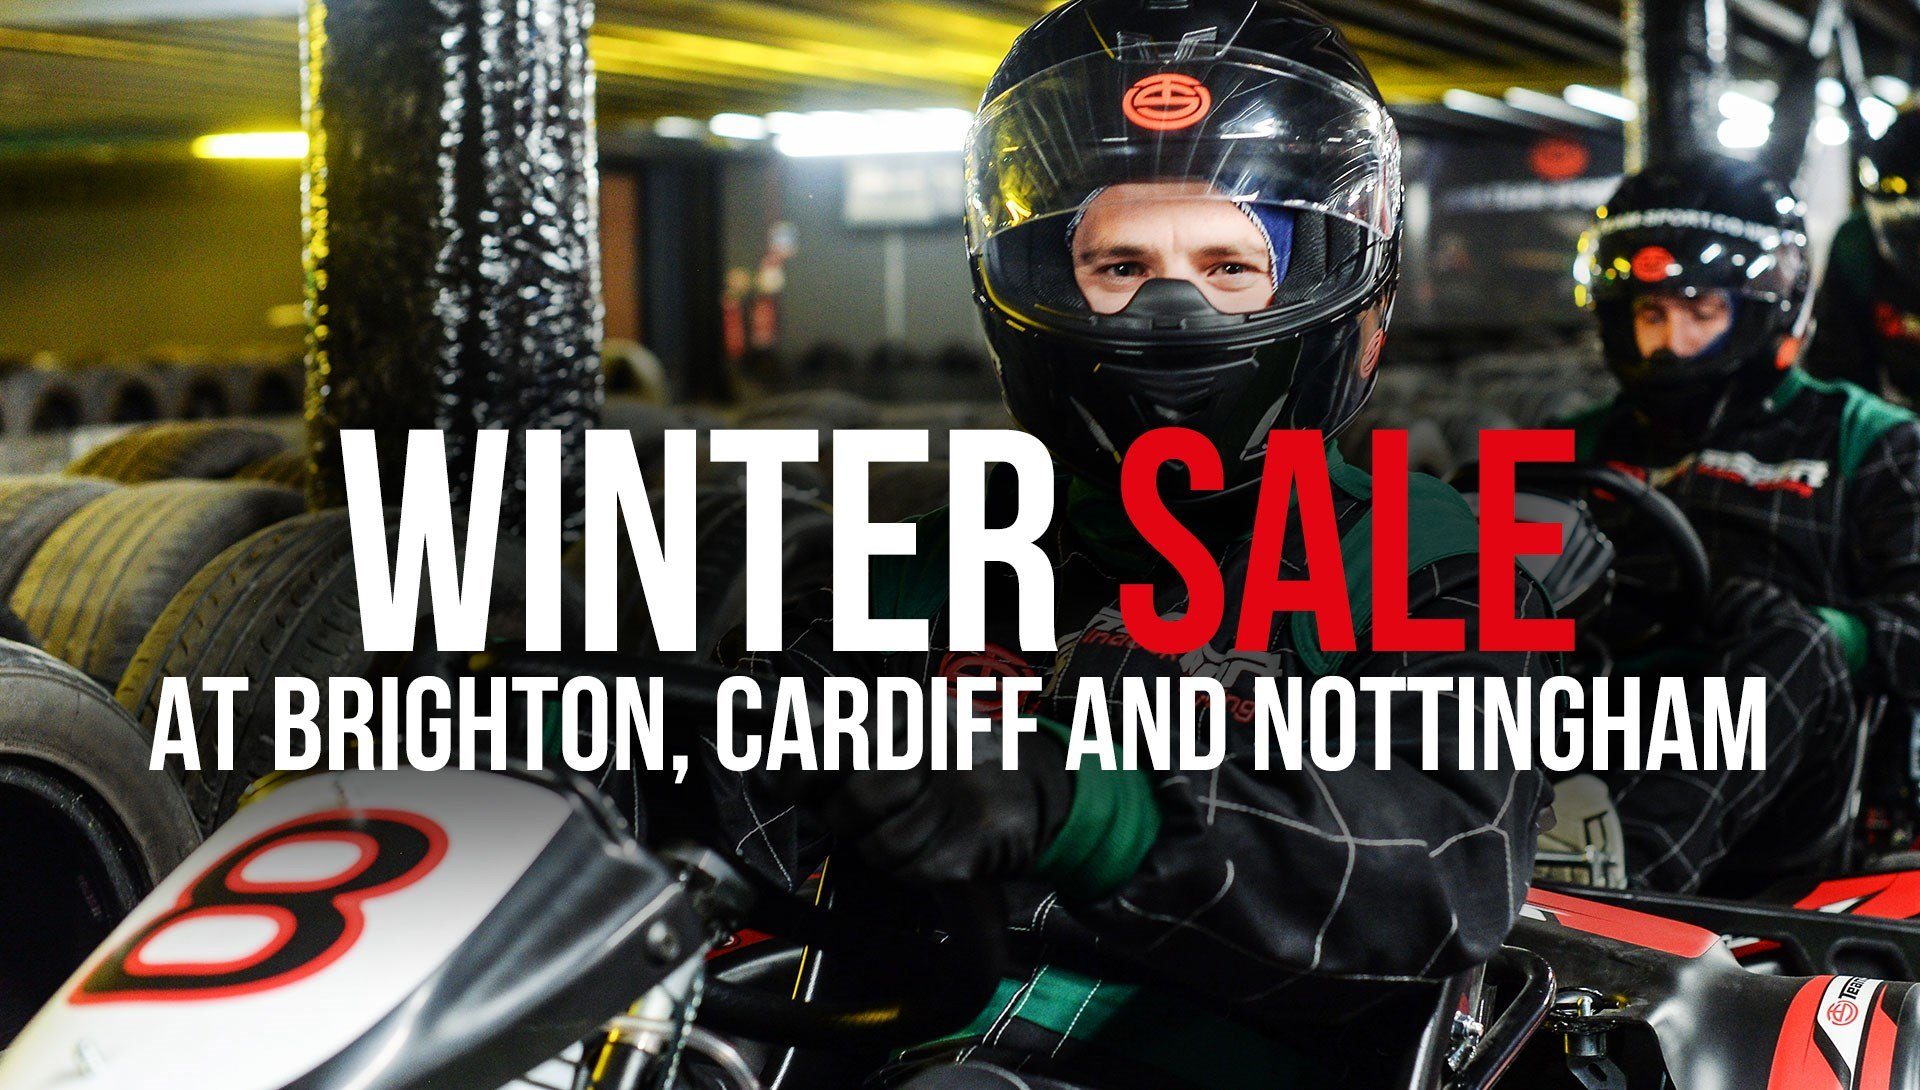 GO KARTING OFFERS - £25 Winter Sale